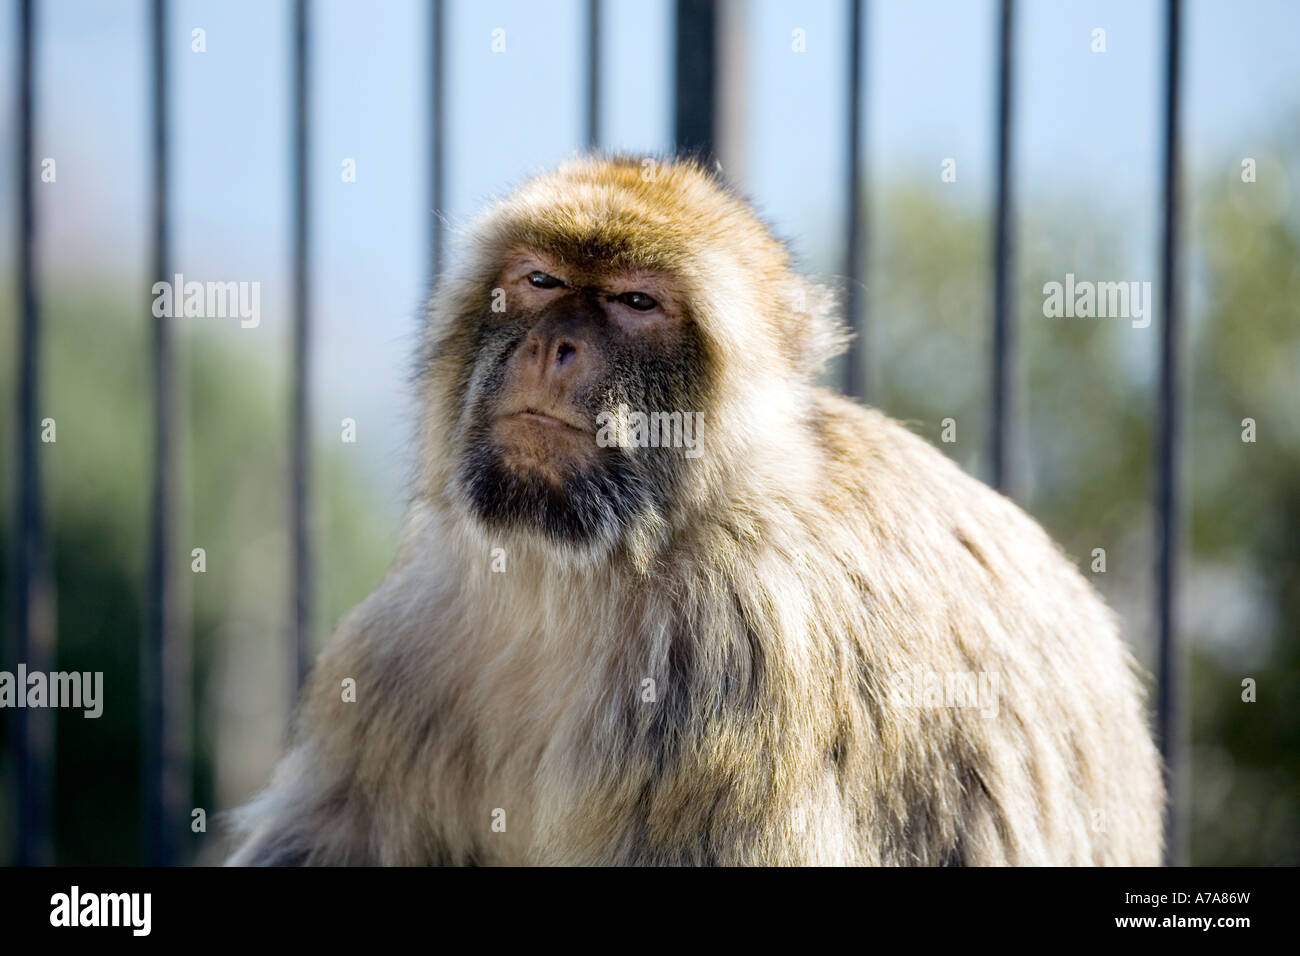 Gibraltar Ape sitting in front of railings - Stock Image